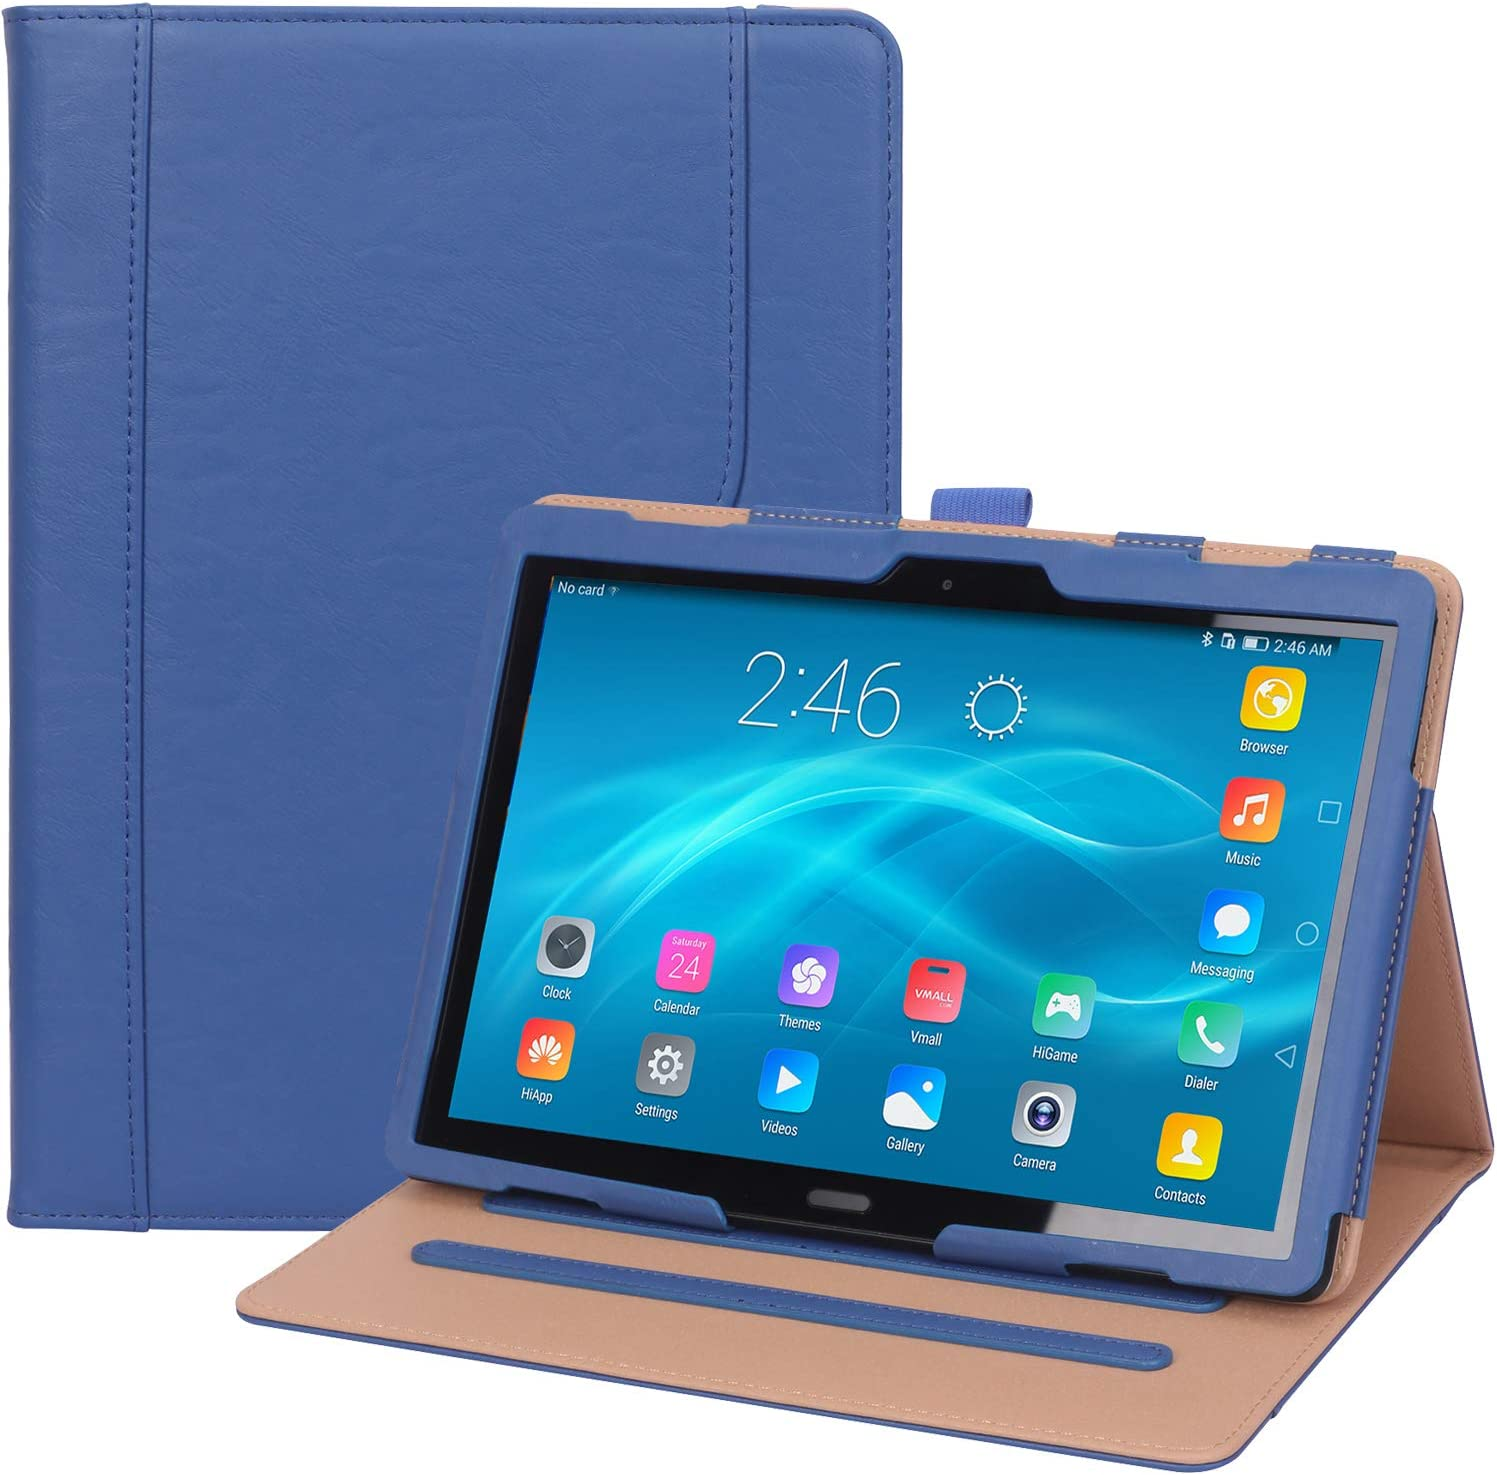 """ProCase Lenovo Tab P10 / M10 / M10 HD 10.1 Case, Leather Protective Stand Folio Case Cover for Lenovo Tab P10 TB-X705F TB-X705L / M10 HD TB-X505F TB-X505L / M10 TB-X605F TB-X605L 10.1"""" Tablet – Navy"""